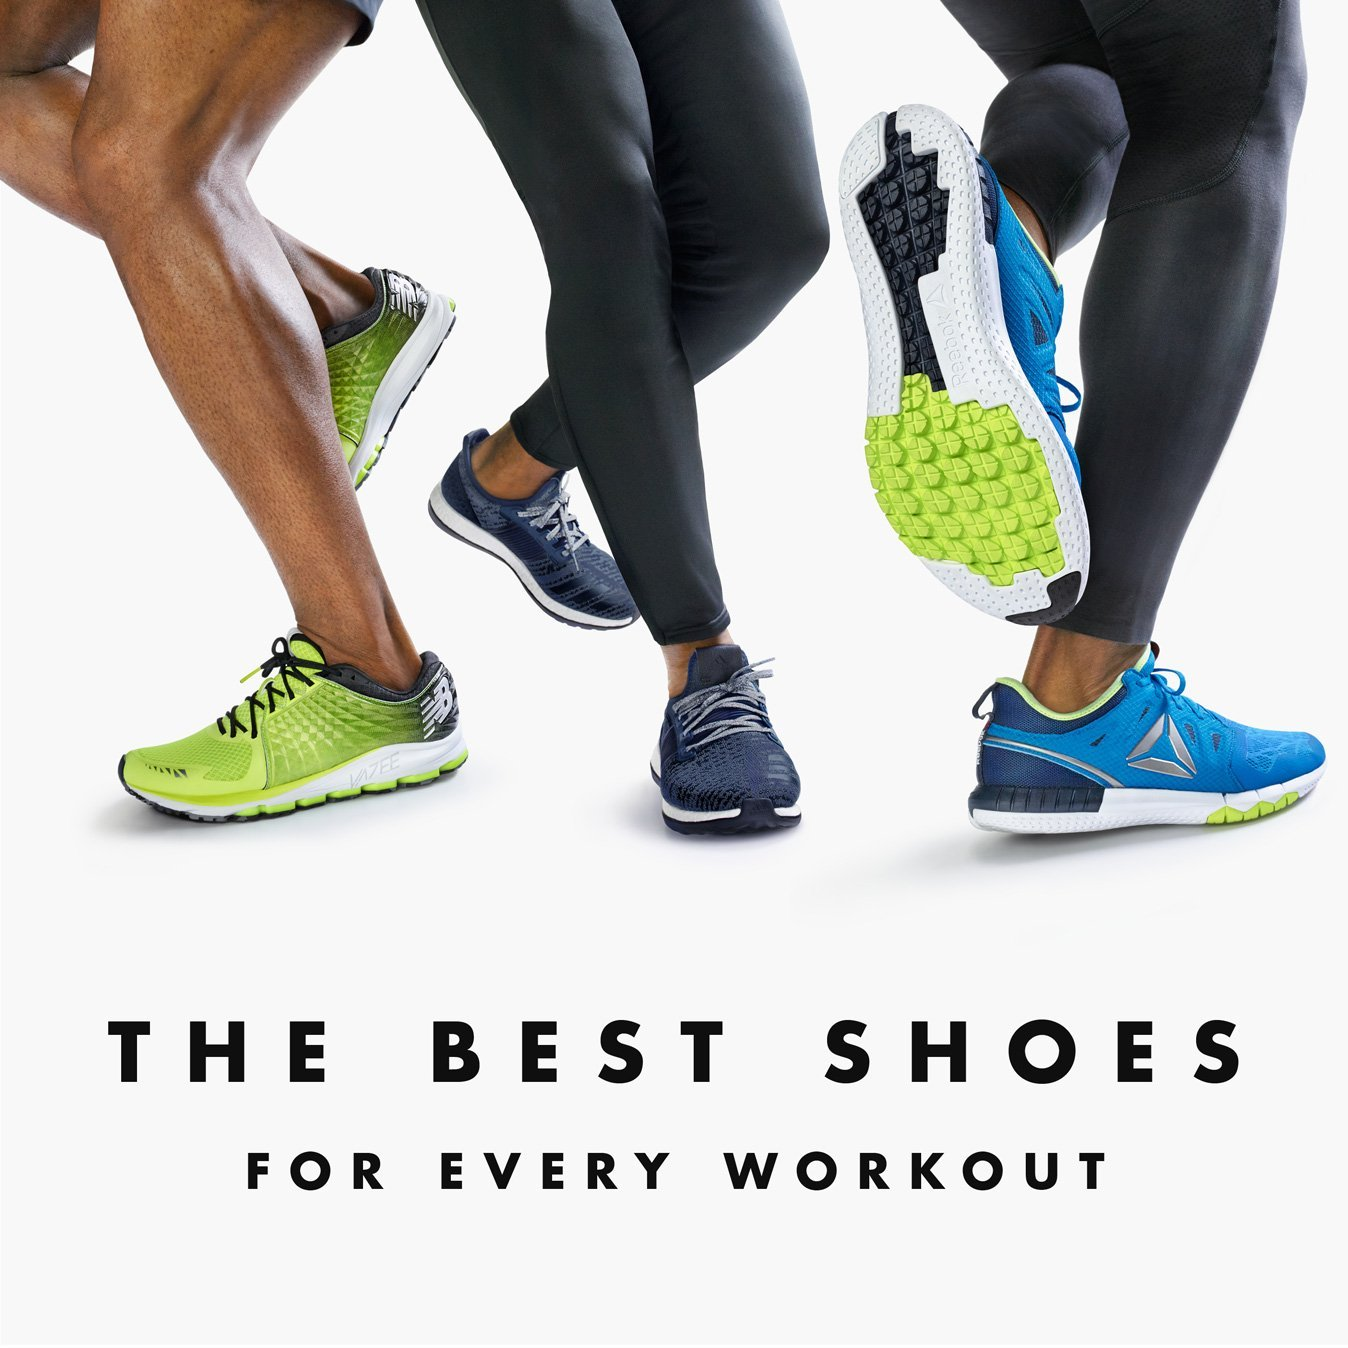 The Best Shoes for Every Workout